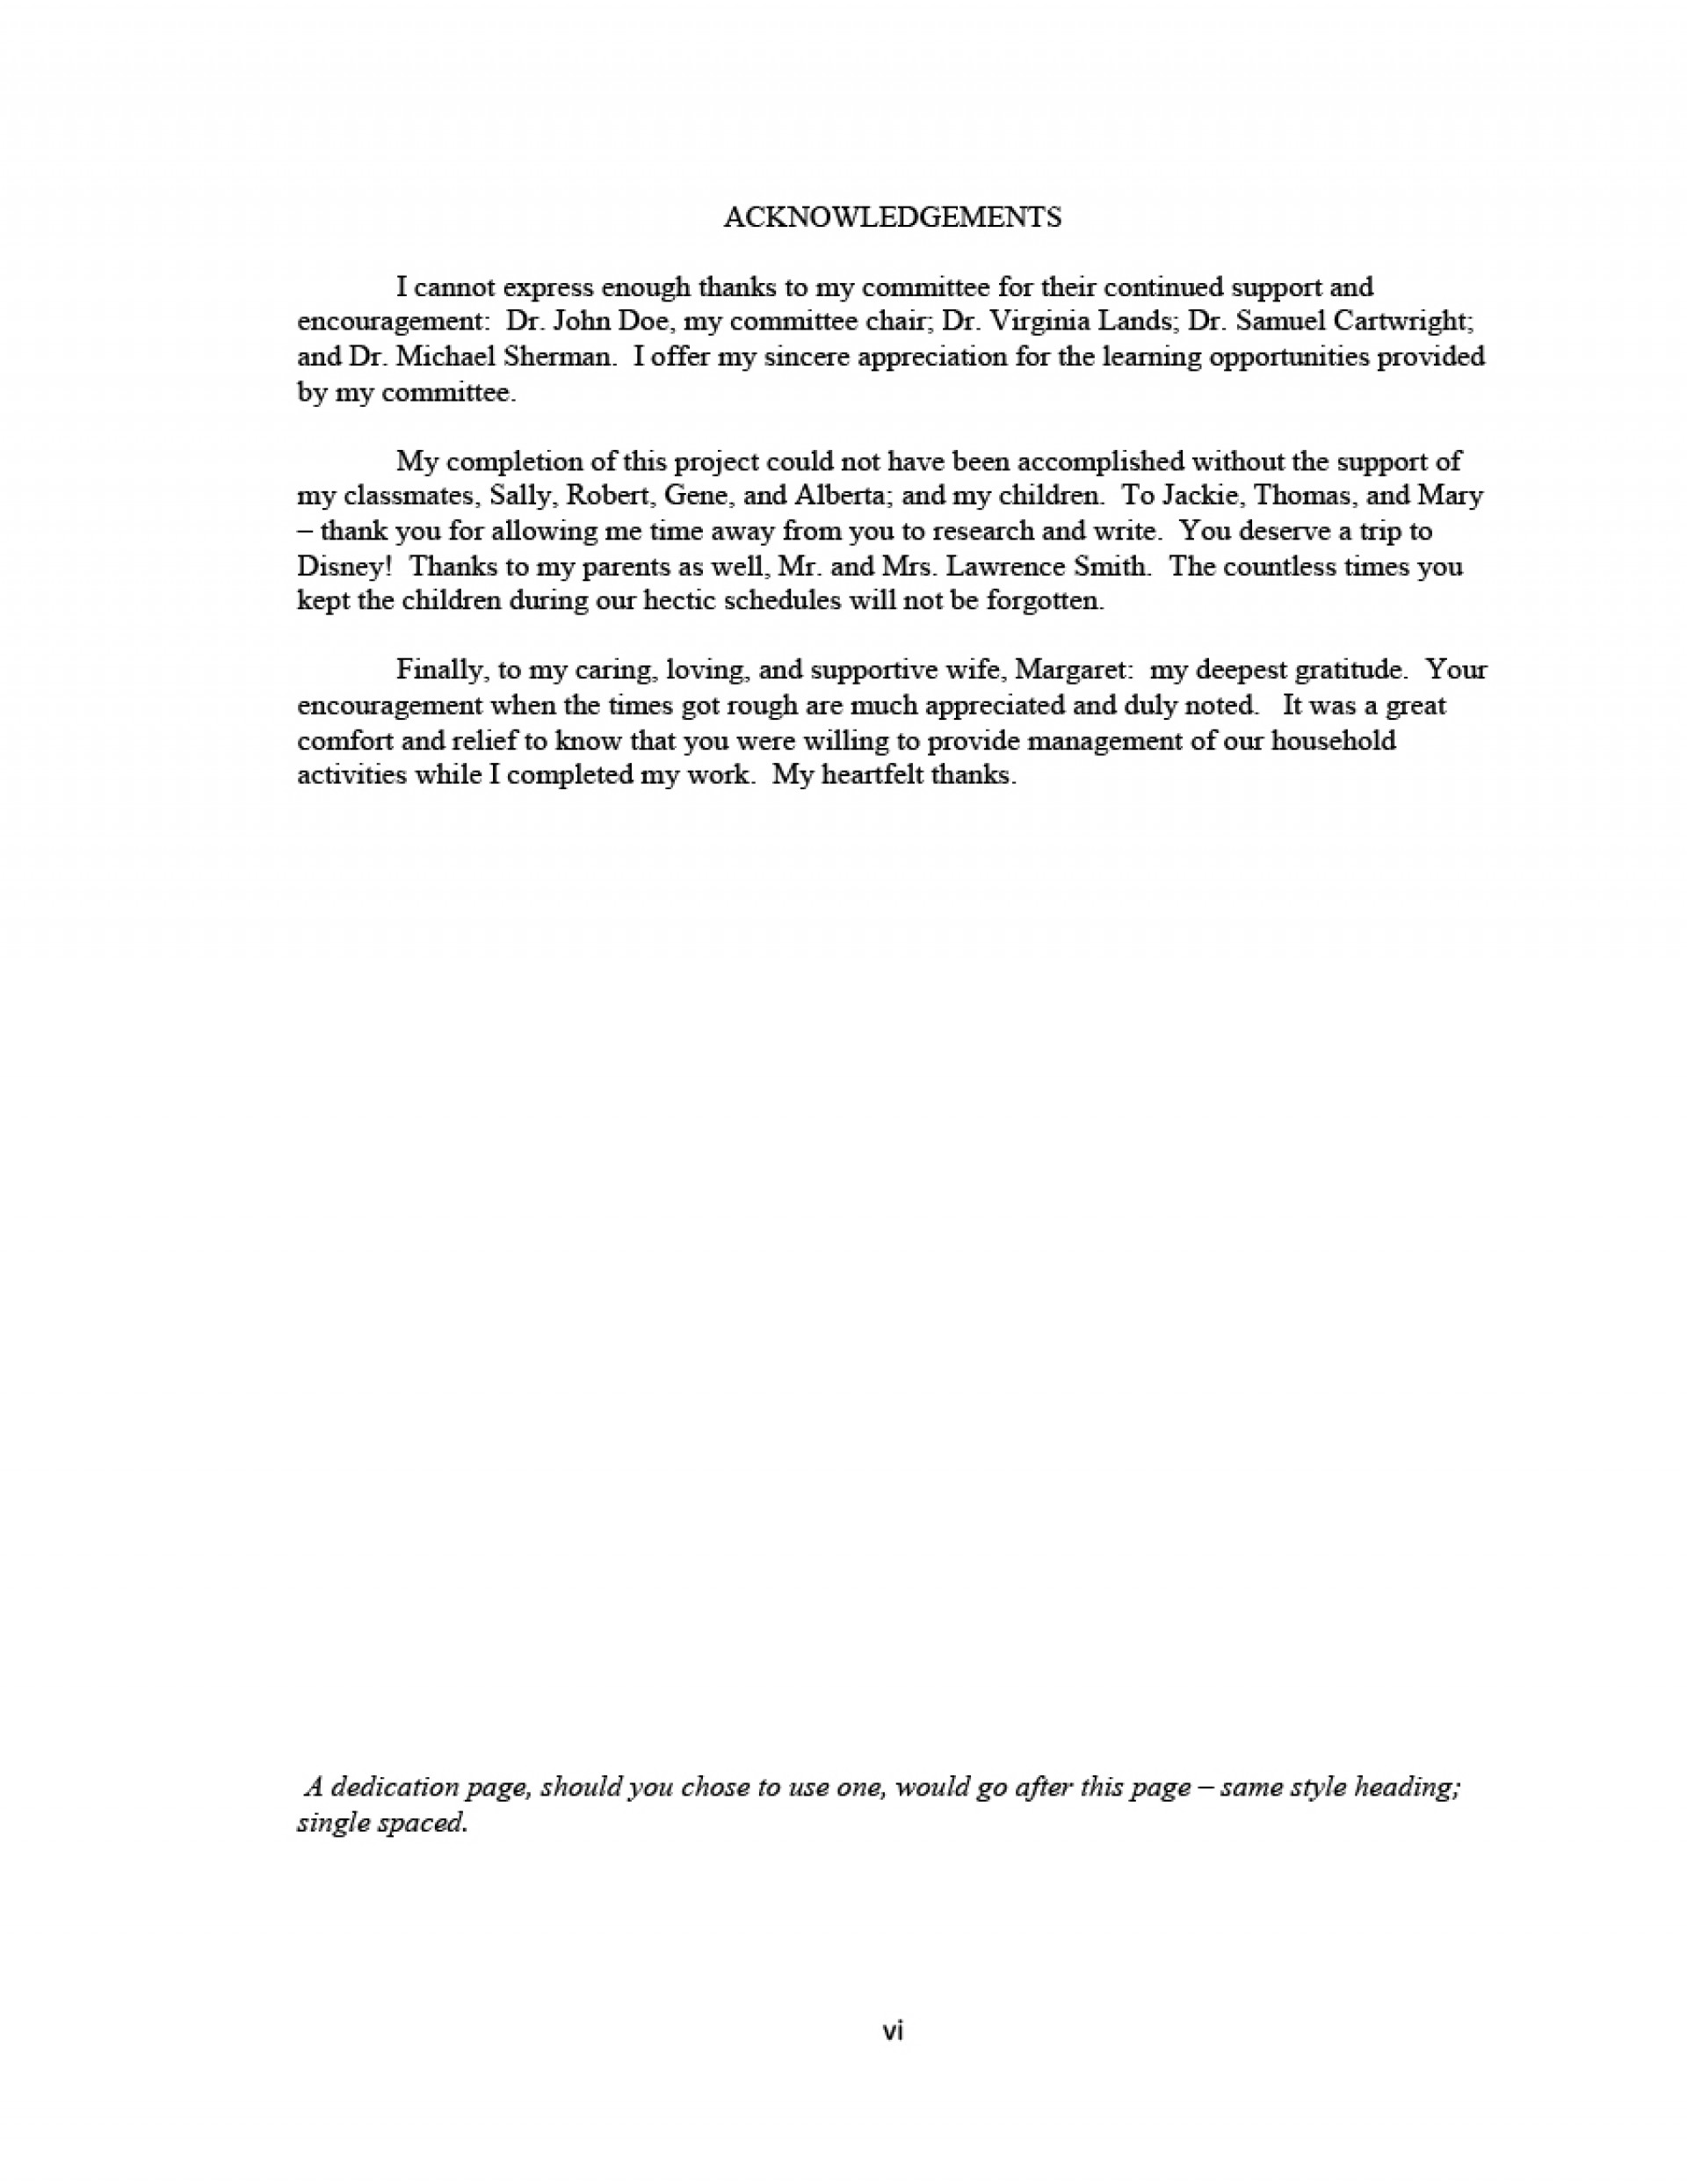 002 Example Of Acknowledgement In Research Paper Sample Remarkable Group For Students Dedication And Pdf 1920